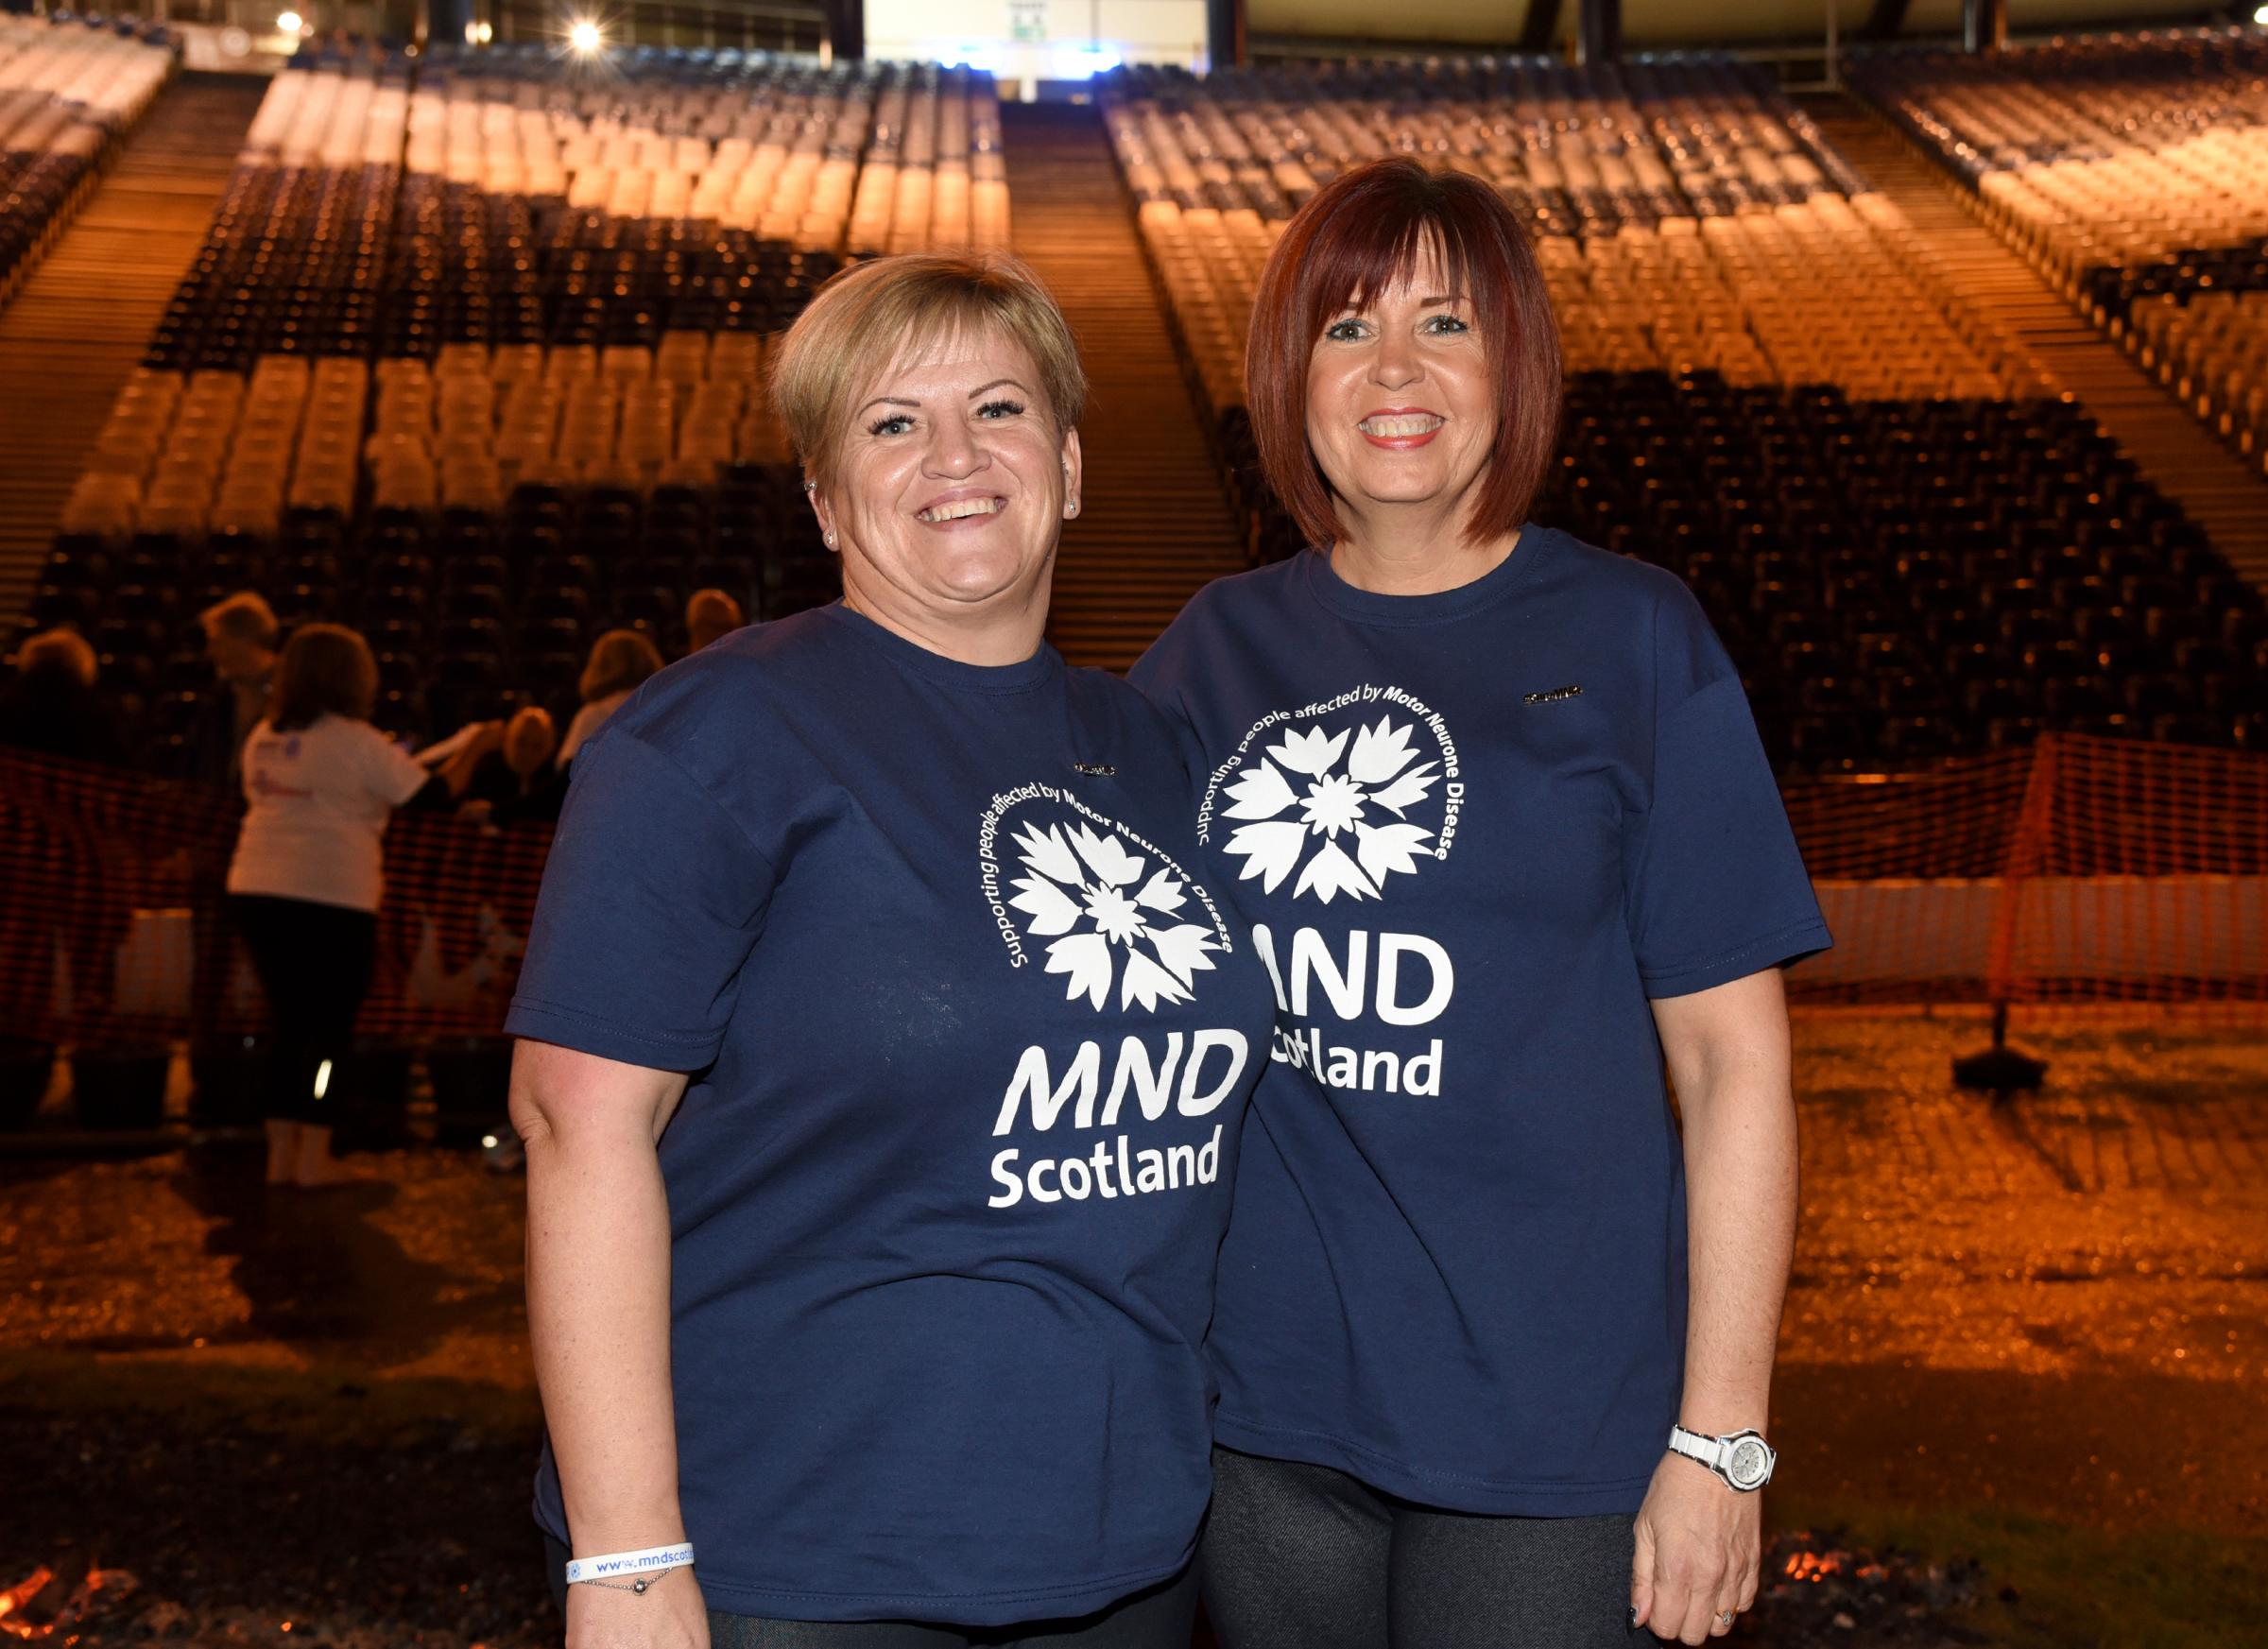 Fire and glass walk for MND